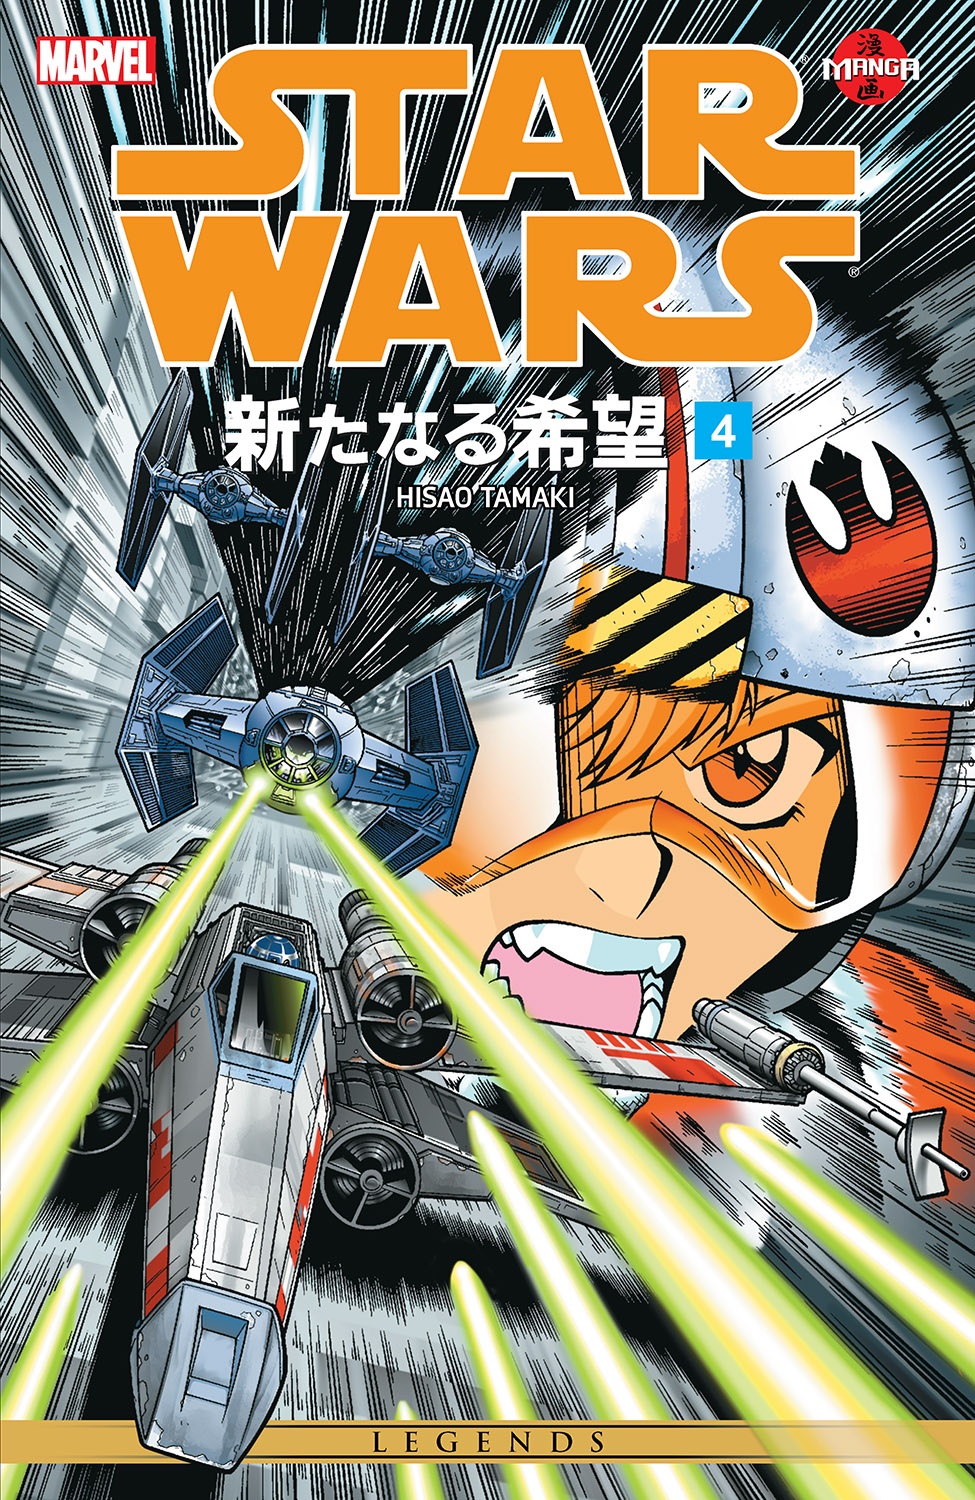 Star Wars: A New Hope Manga (1998) #4